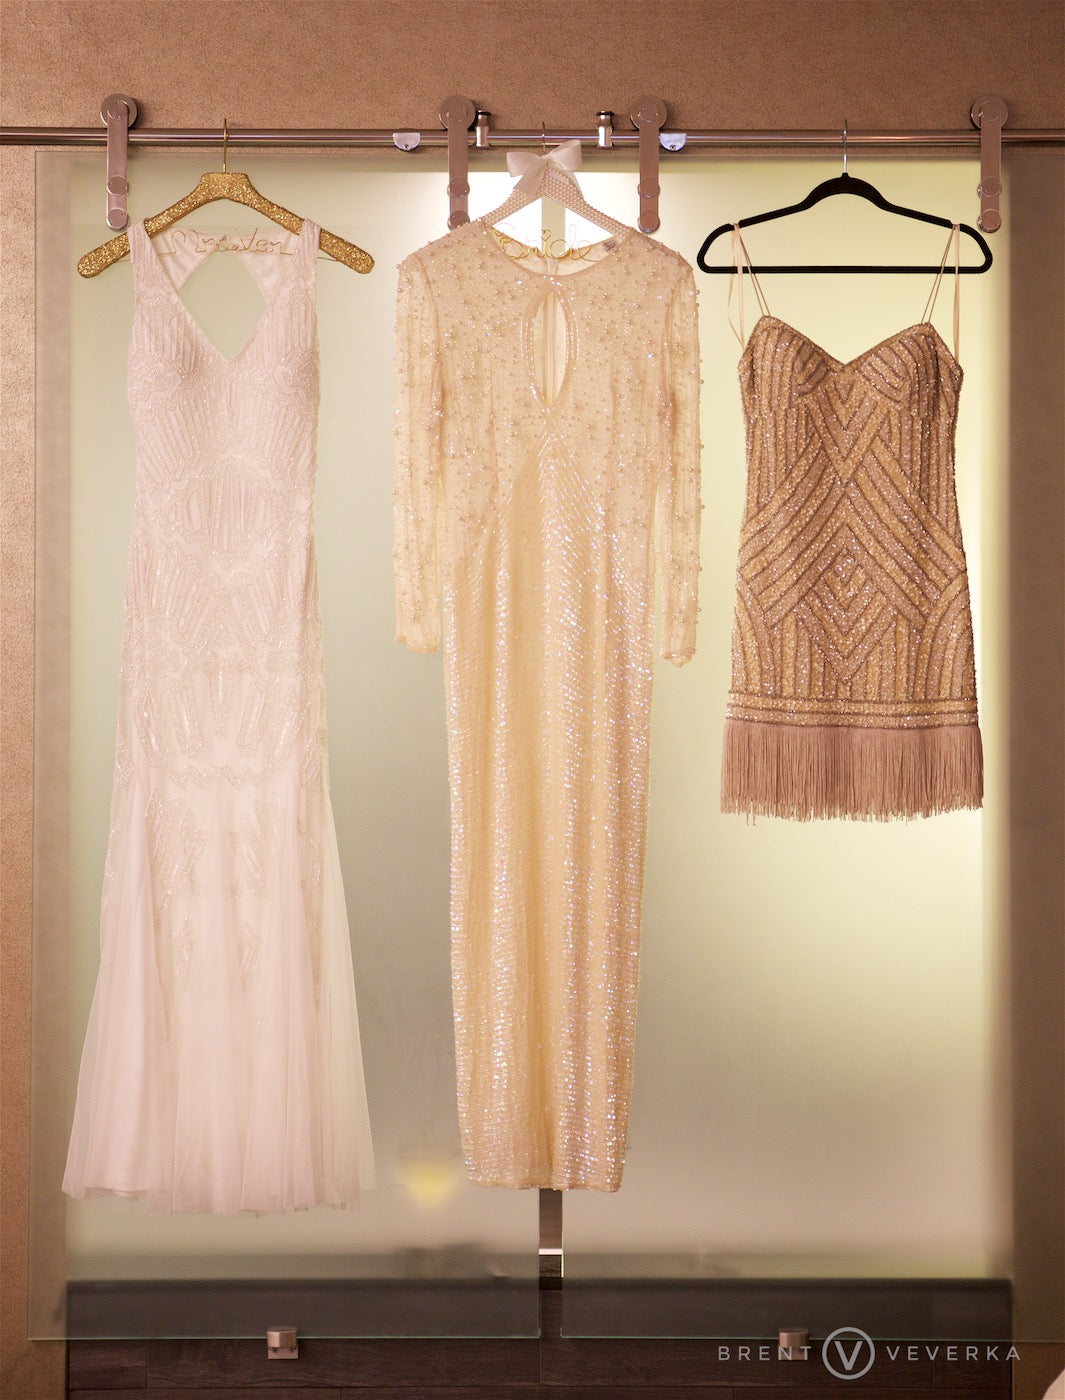 Bride's Three Dresses  | Glam Speakeasy Wedding | Brent Veverka Media